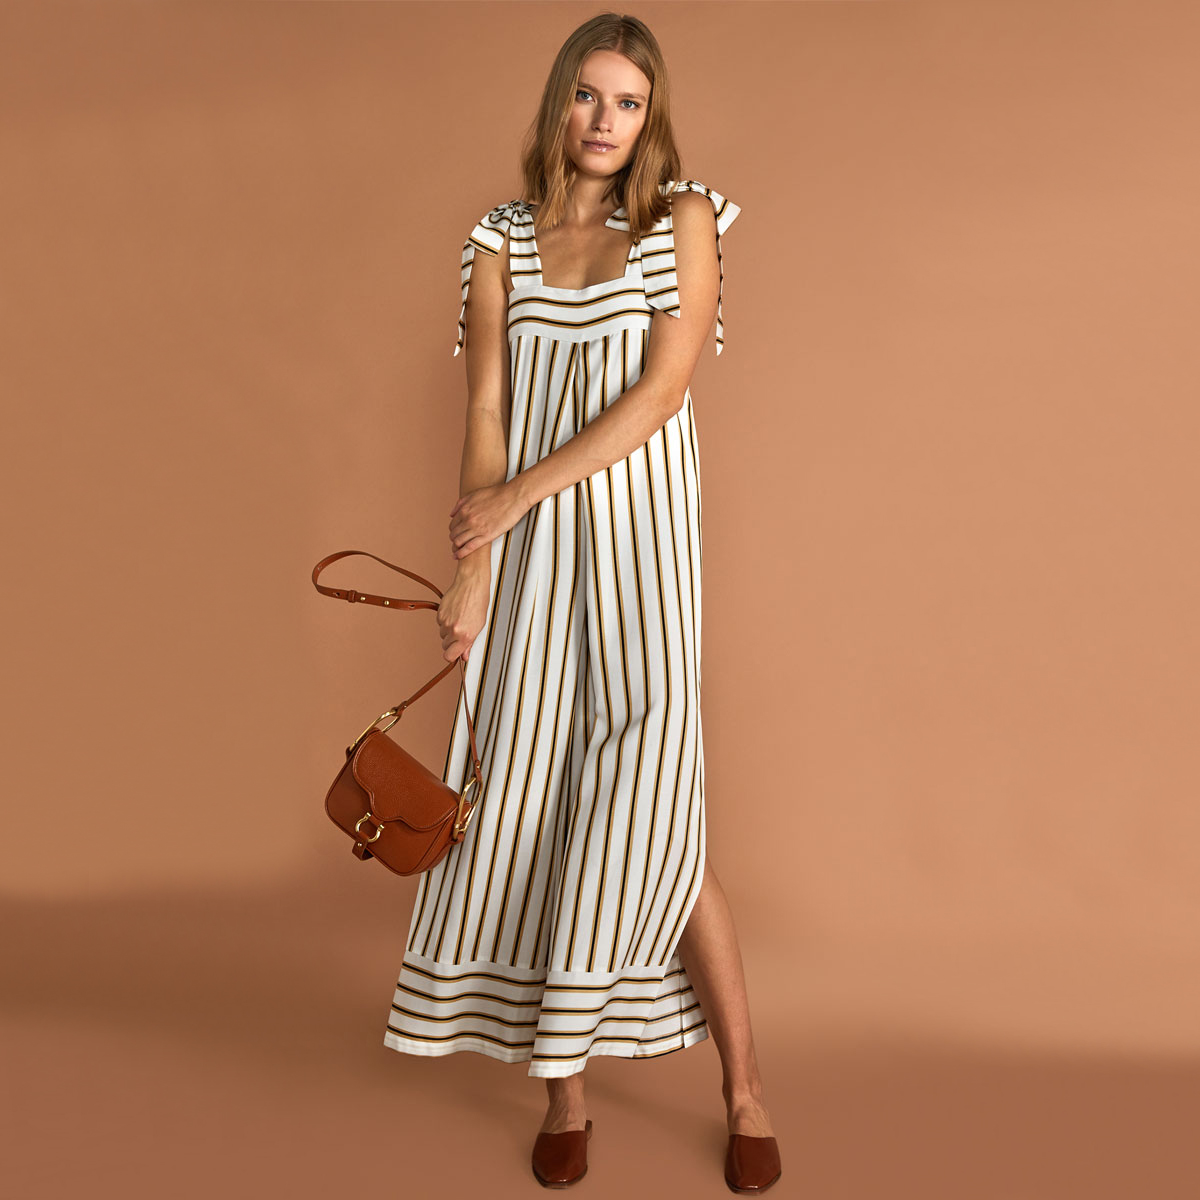 Sancia Thalita Jumpsuit in Cilou Stripe on woman